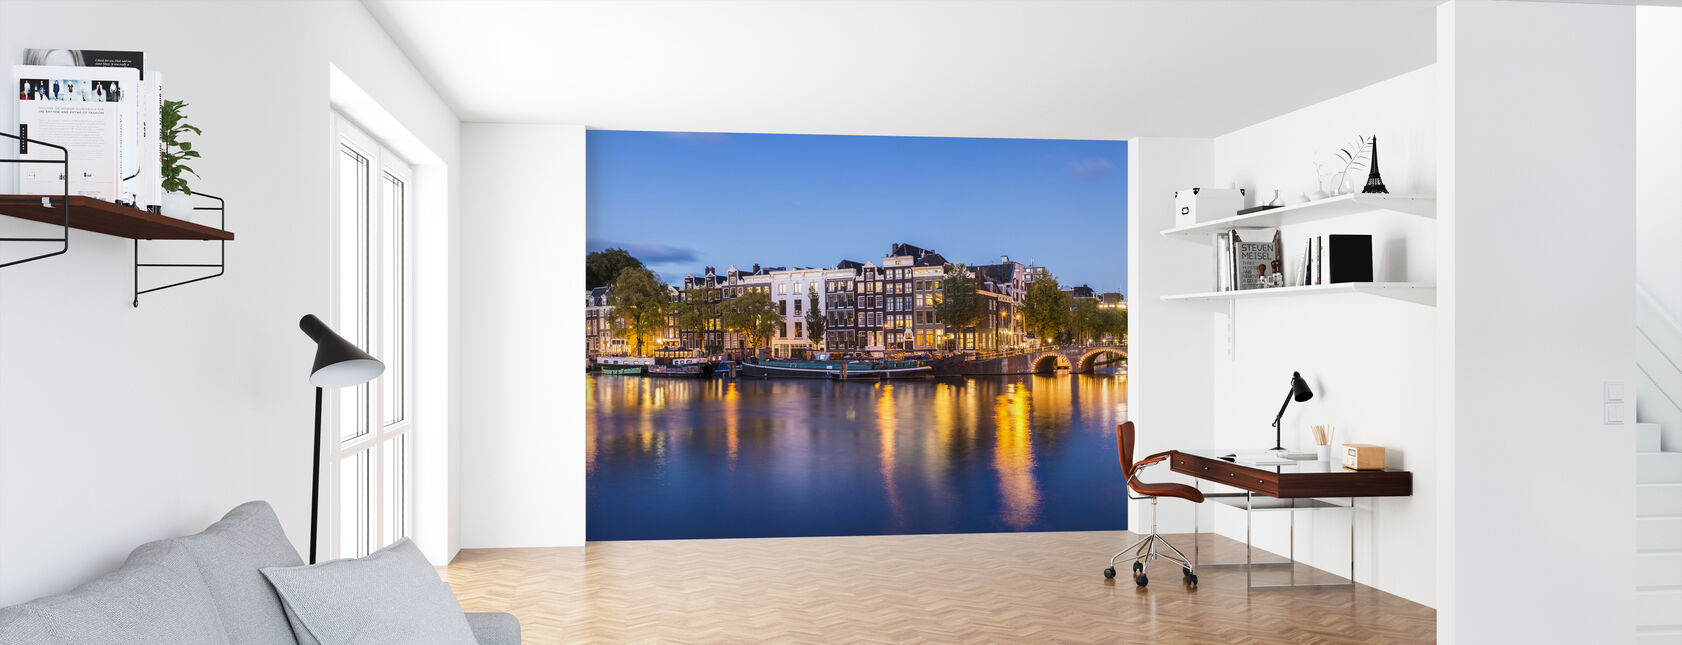 Skinny Bridge and Amstel Canal - Wallpaper - Office